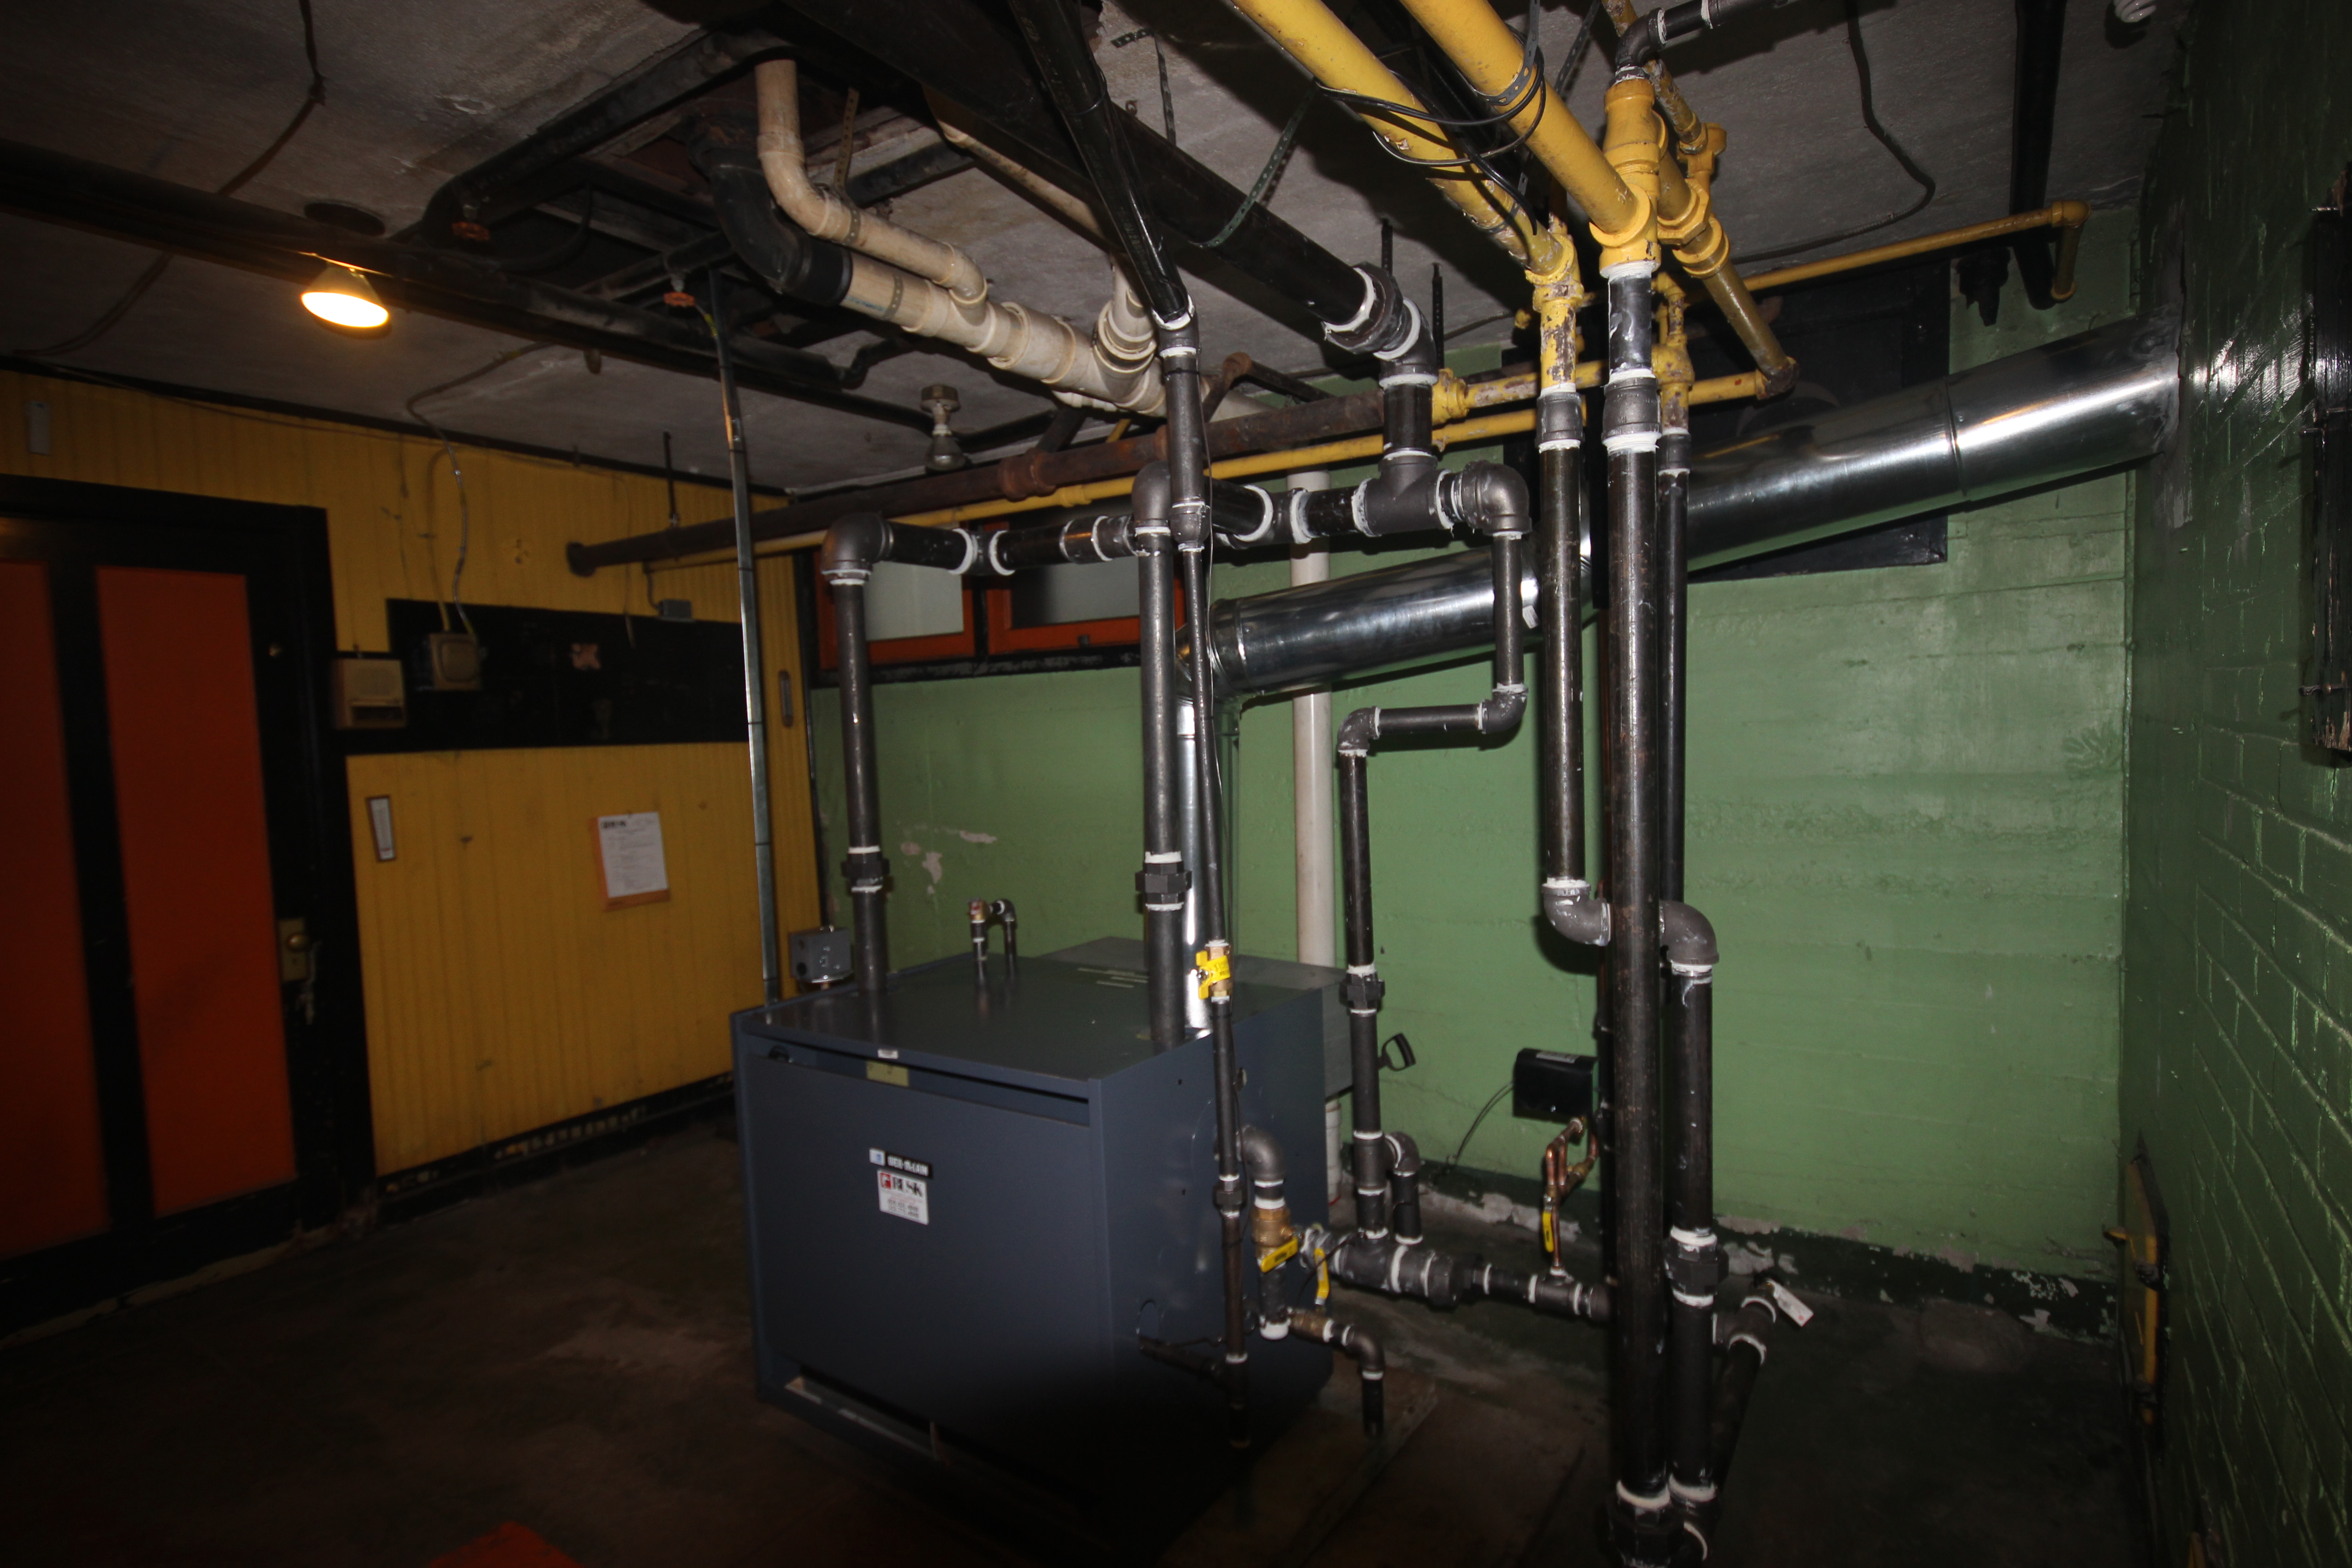 New boiler install Weil McLain EGH-85 (issues) — Heating Help: The on